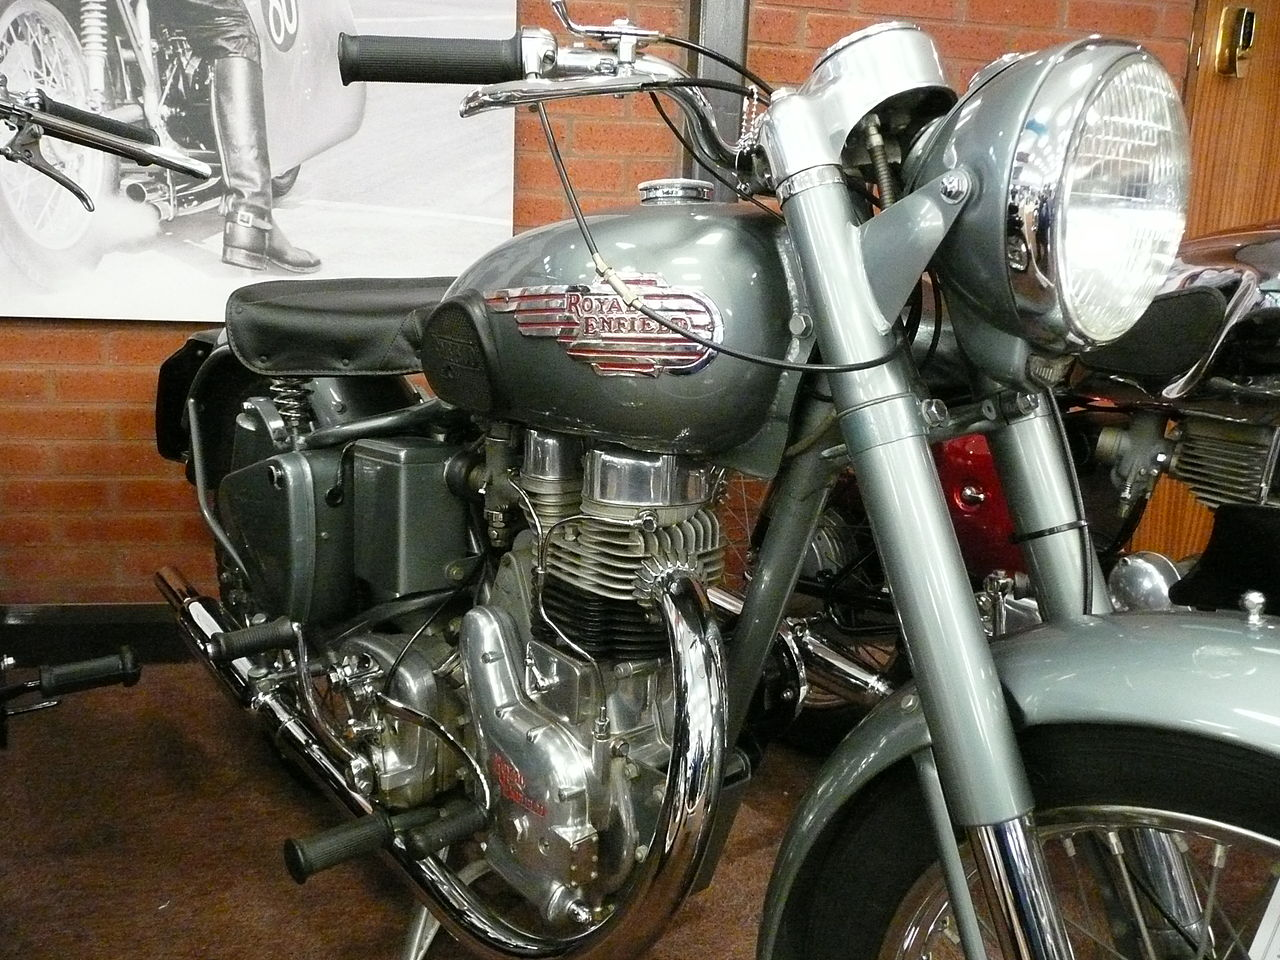 Price royal enfield classic 350 price royal enfield classic 350 price fandeluxe Choice Image